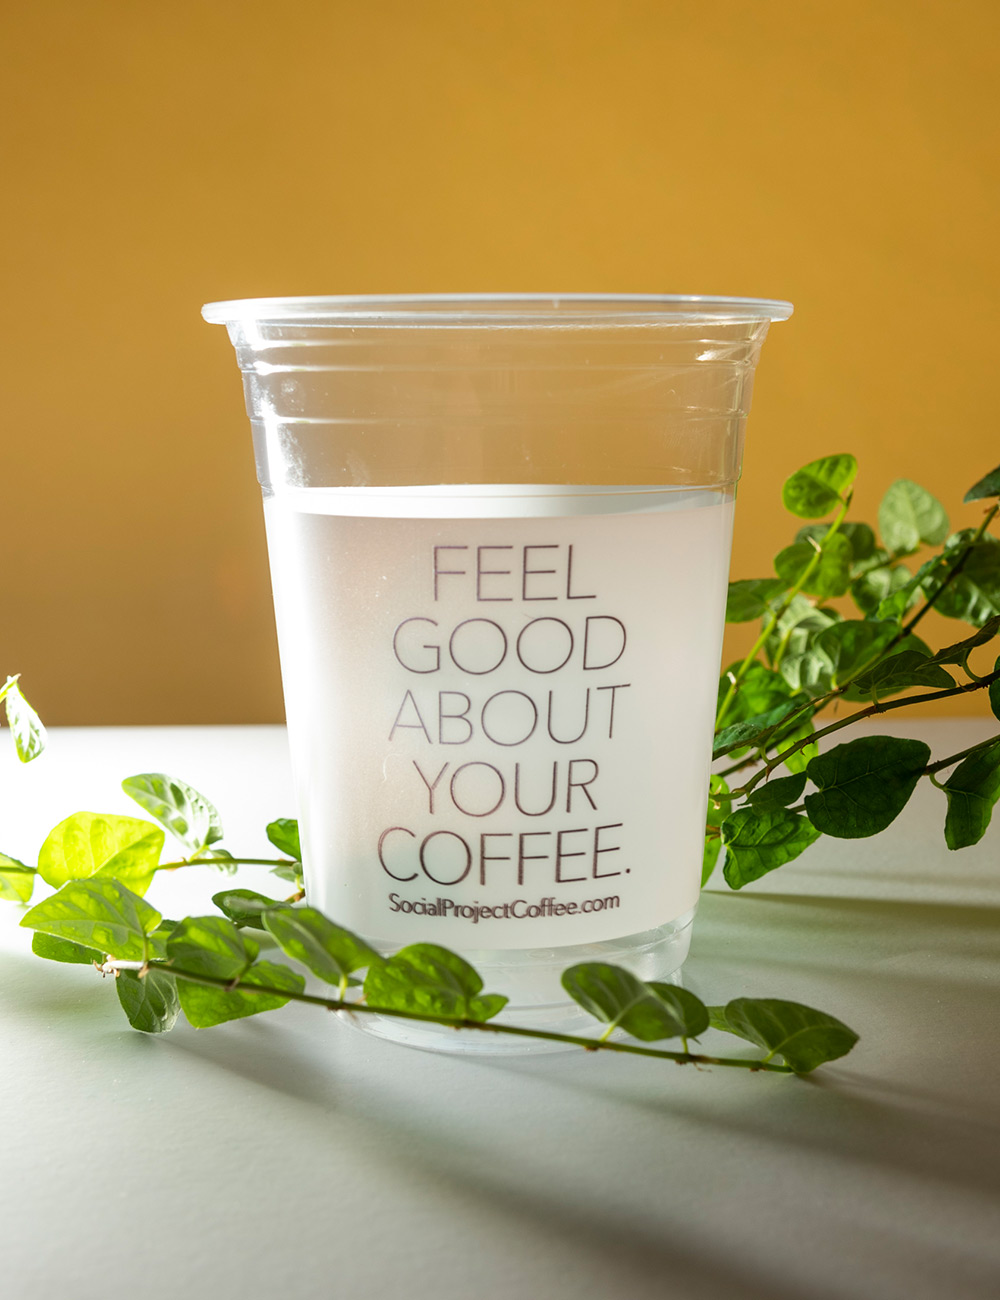 Composting - From large chains to independents, coffee shops across the country produce an enormous amount of waste that ends up in landfills because the products they offer can't be recycled or composted. Unlike the vast majority of coffee shops, Think Coffee only uses disposable paper products that are compostable